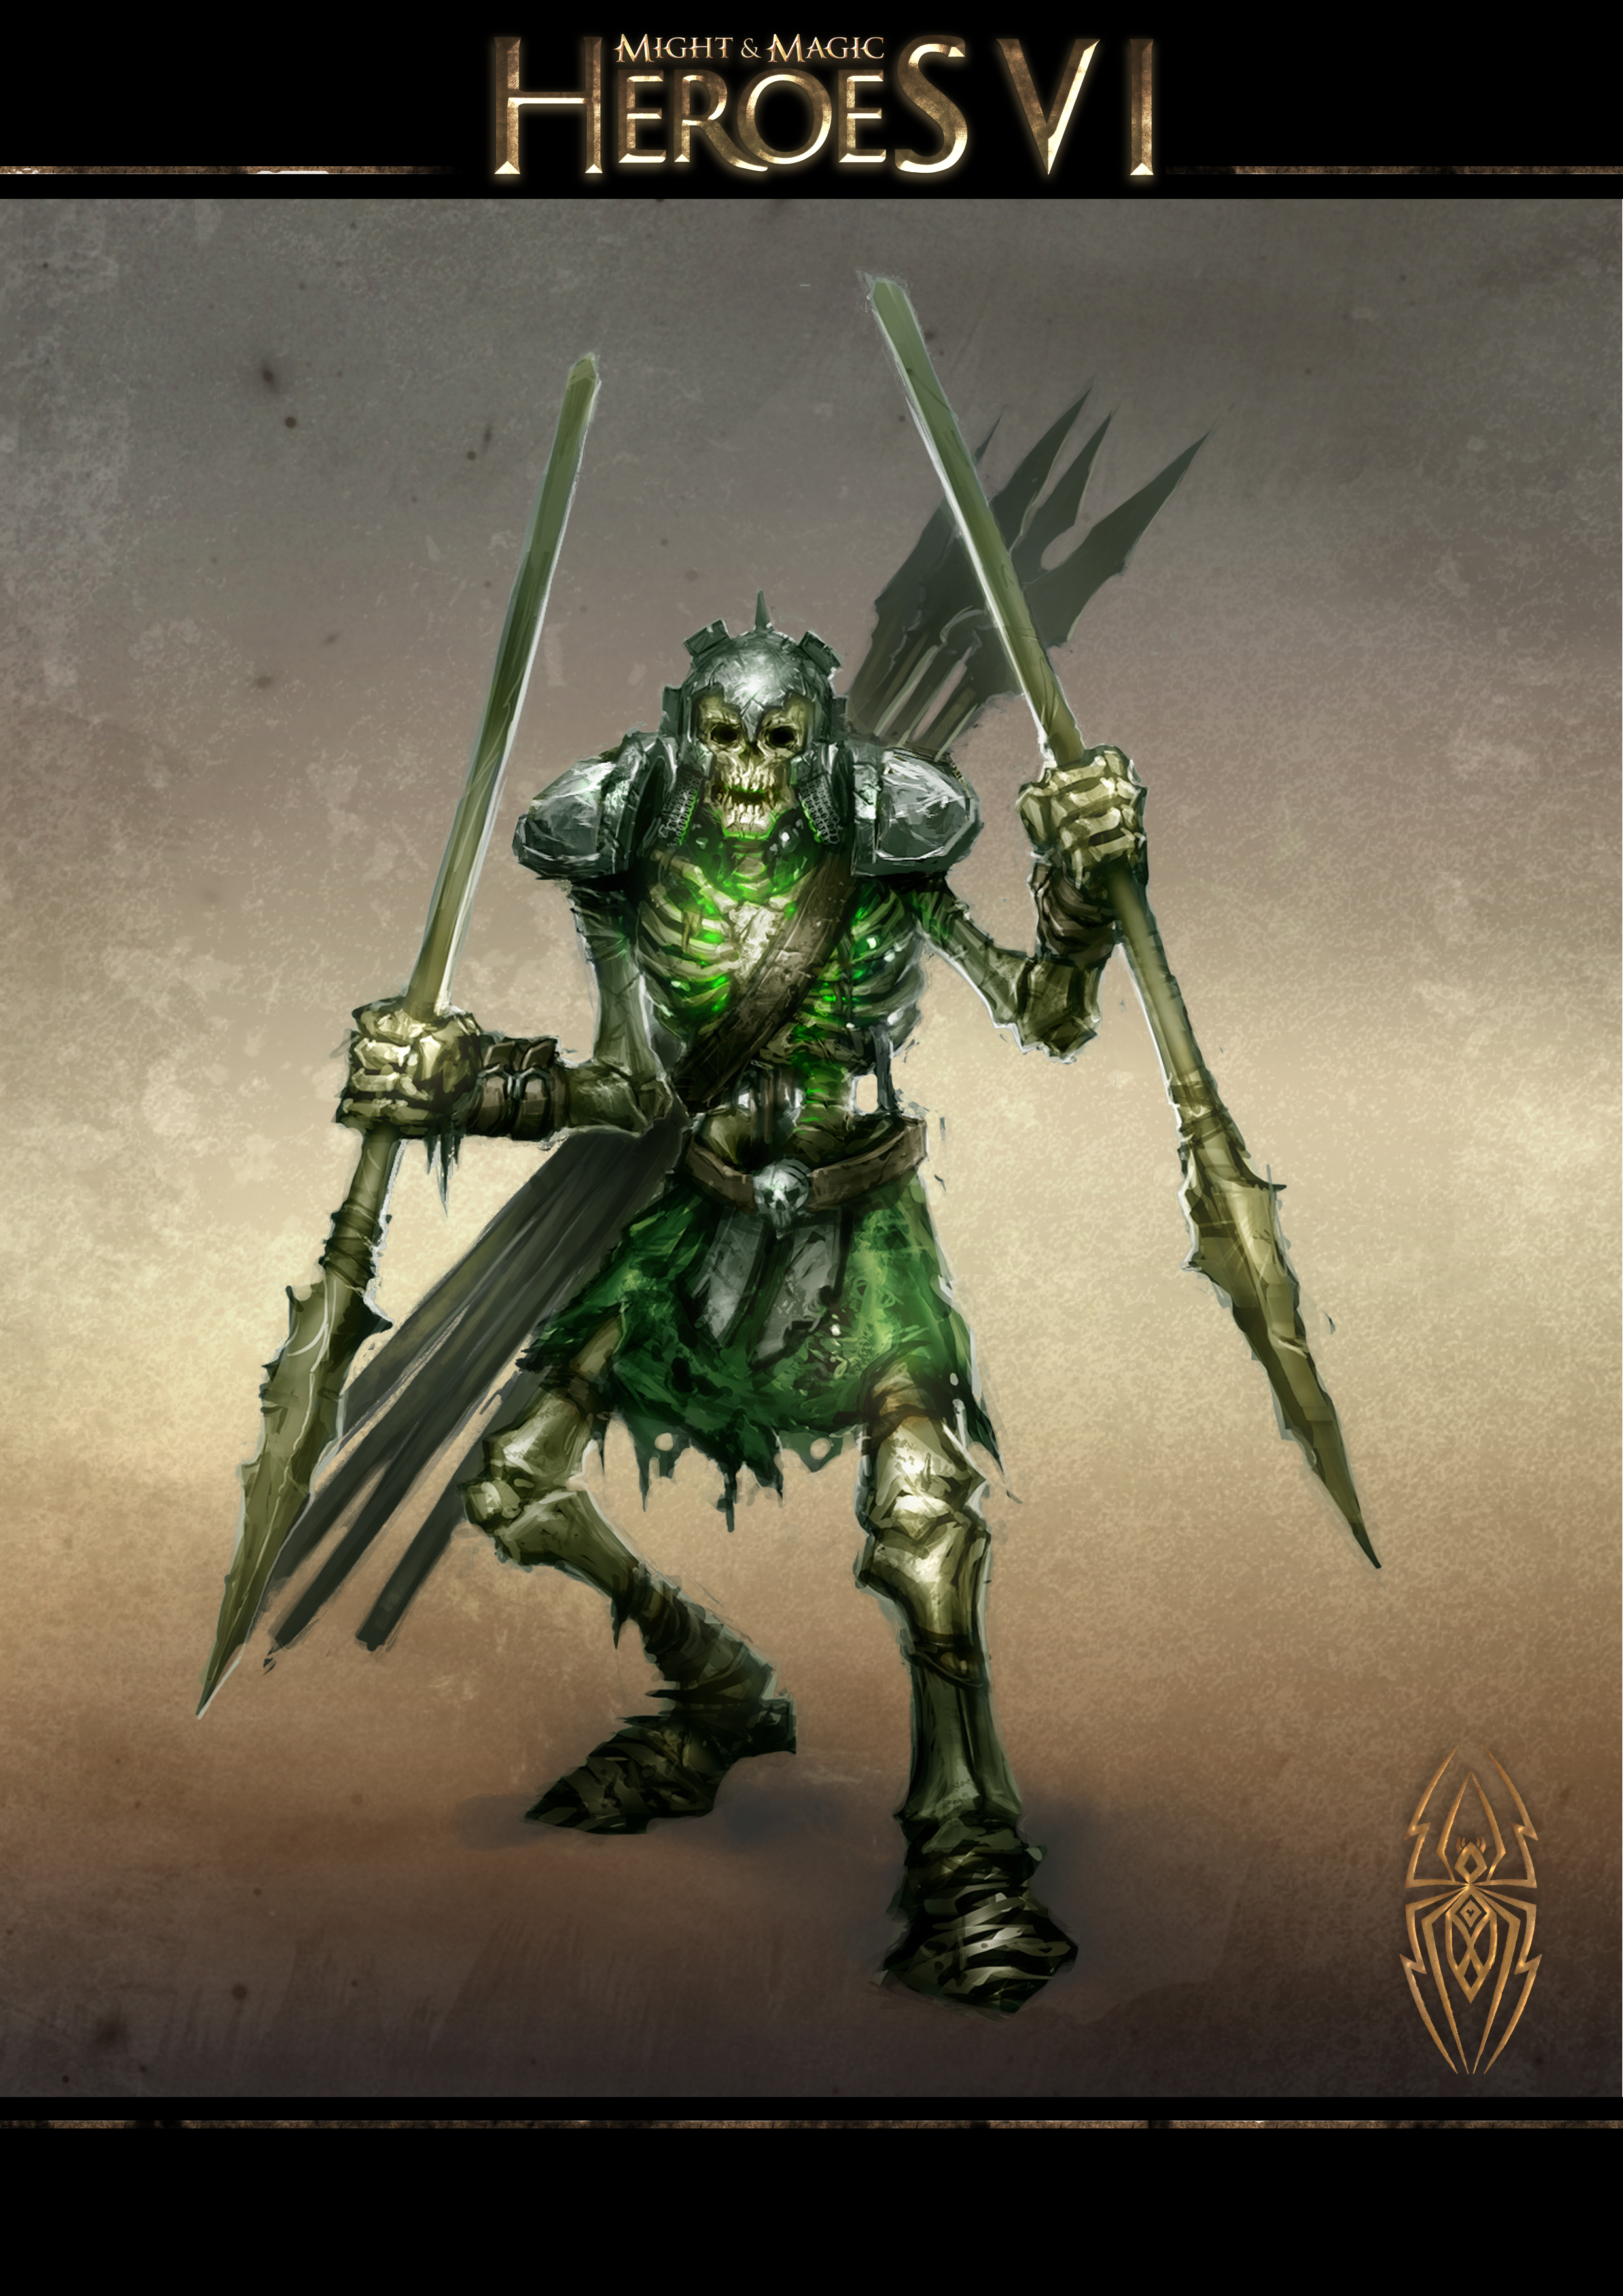 Might and Magic Heroes-6 26.jpg - Might and Magic: Heroes 6